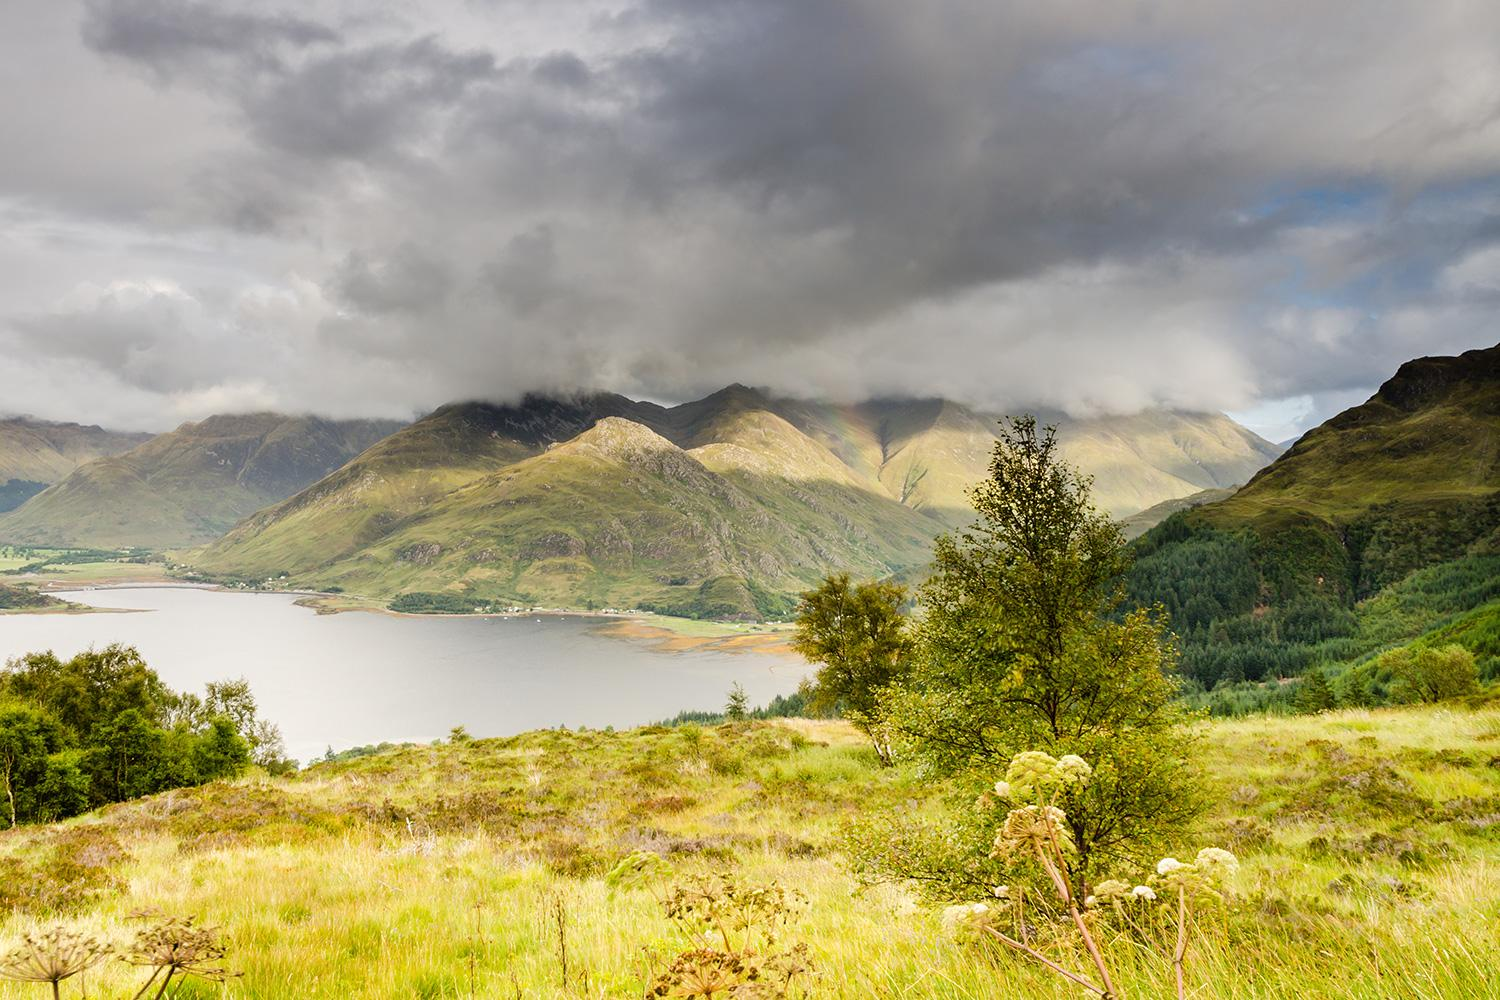 View towards the Five Sisters of Kintail